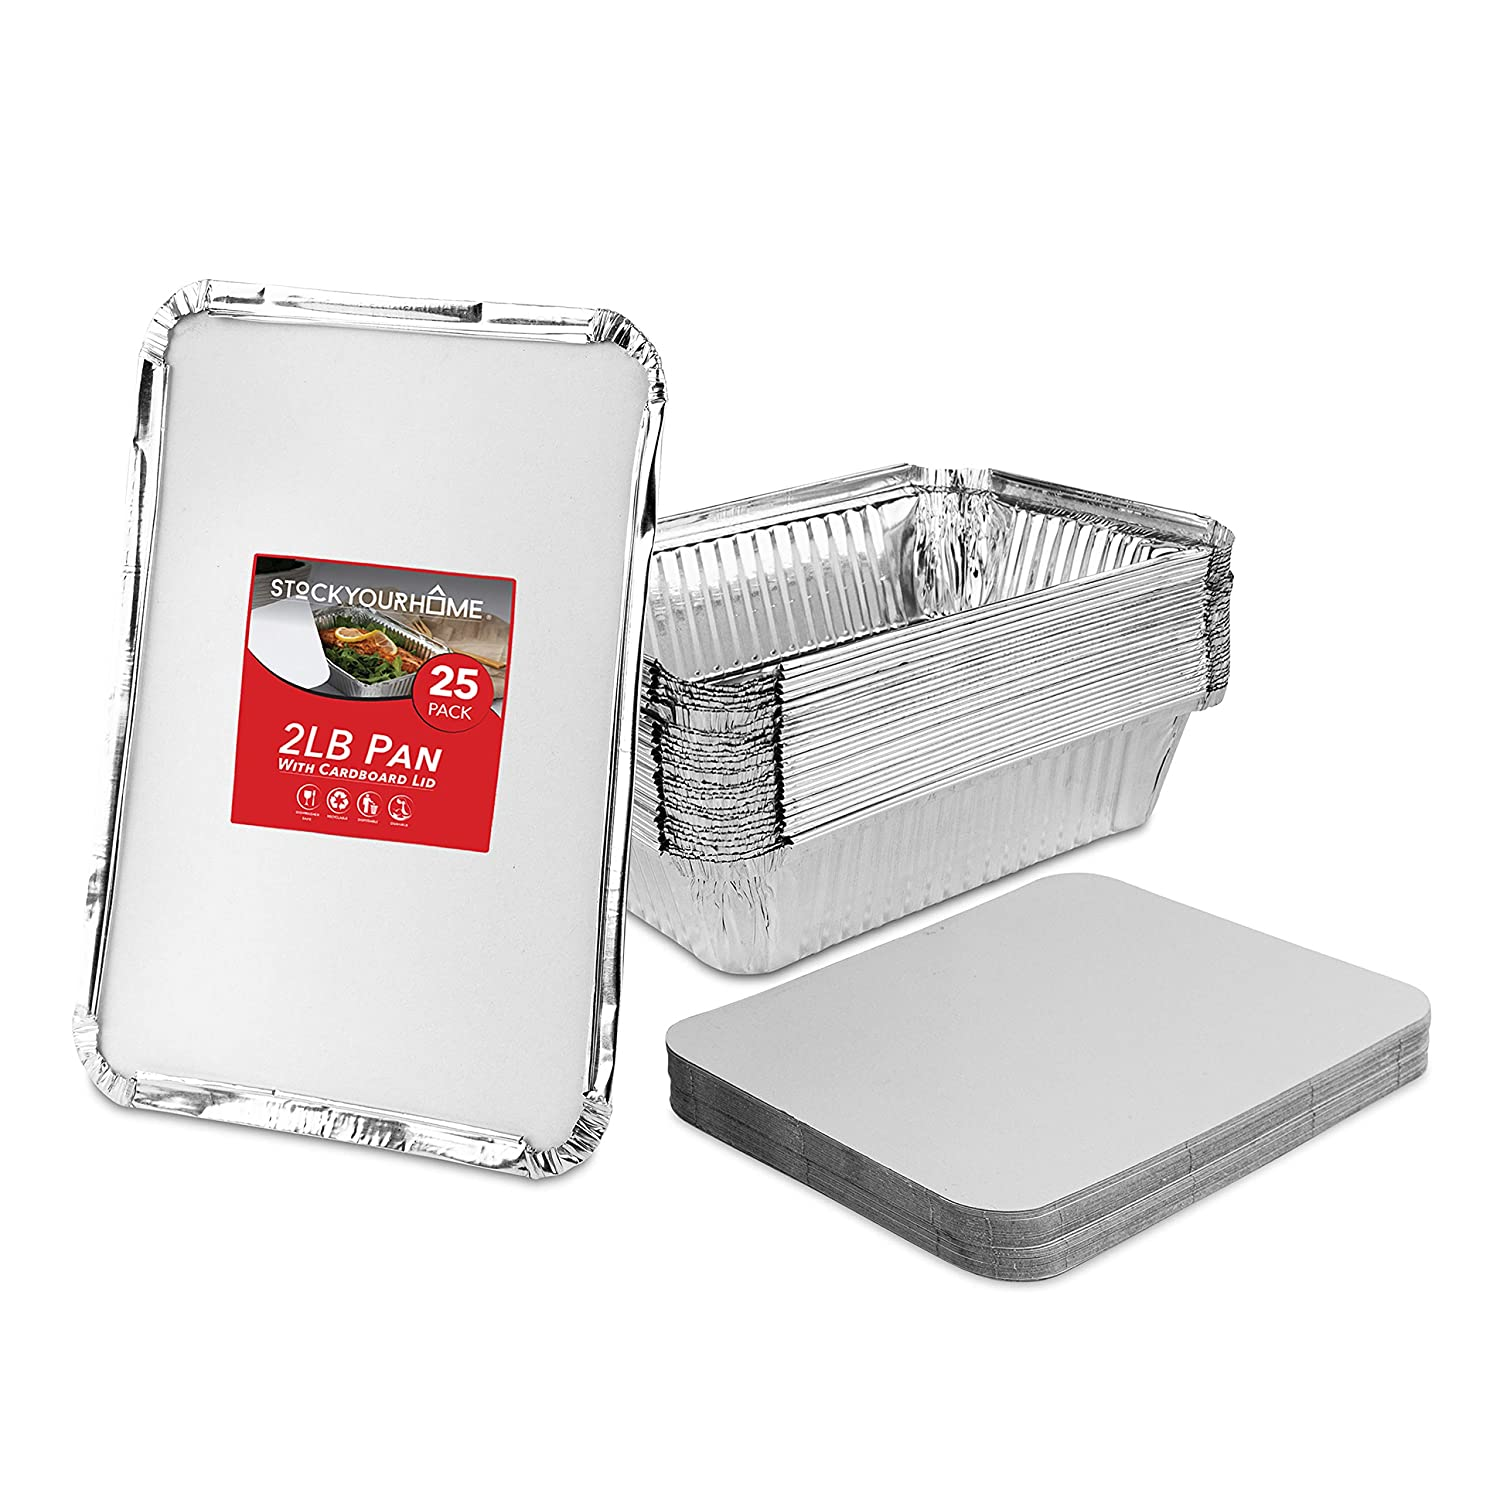 Stock Your Home 2 Lb Aluminum Pans with Lids (25 Pack) - Food Containers with Cardboard Lids - Disposable & Recyclable Takeout Trays with Lids - to Go Containers for Restaurants, Catering, Delis